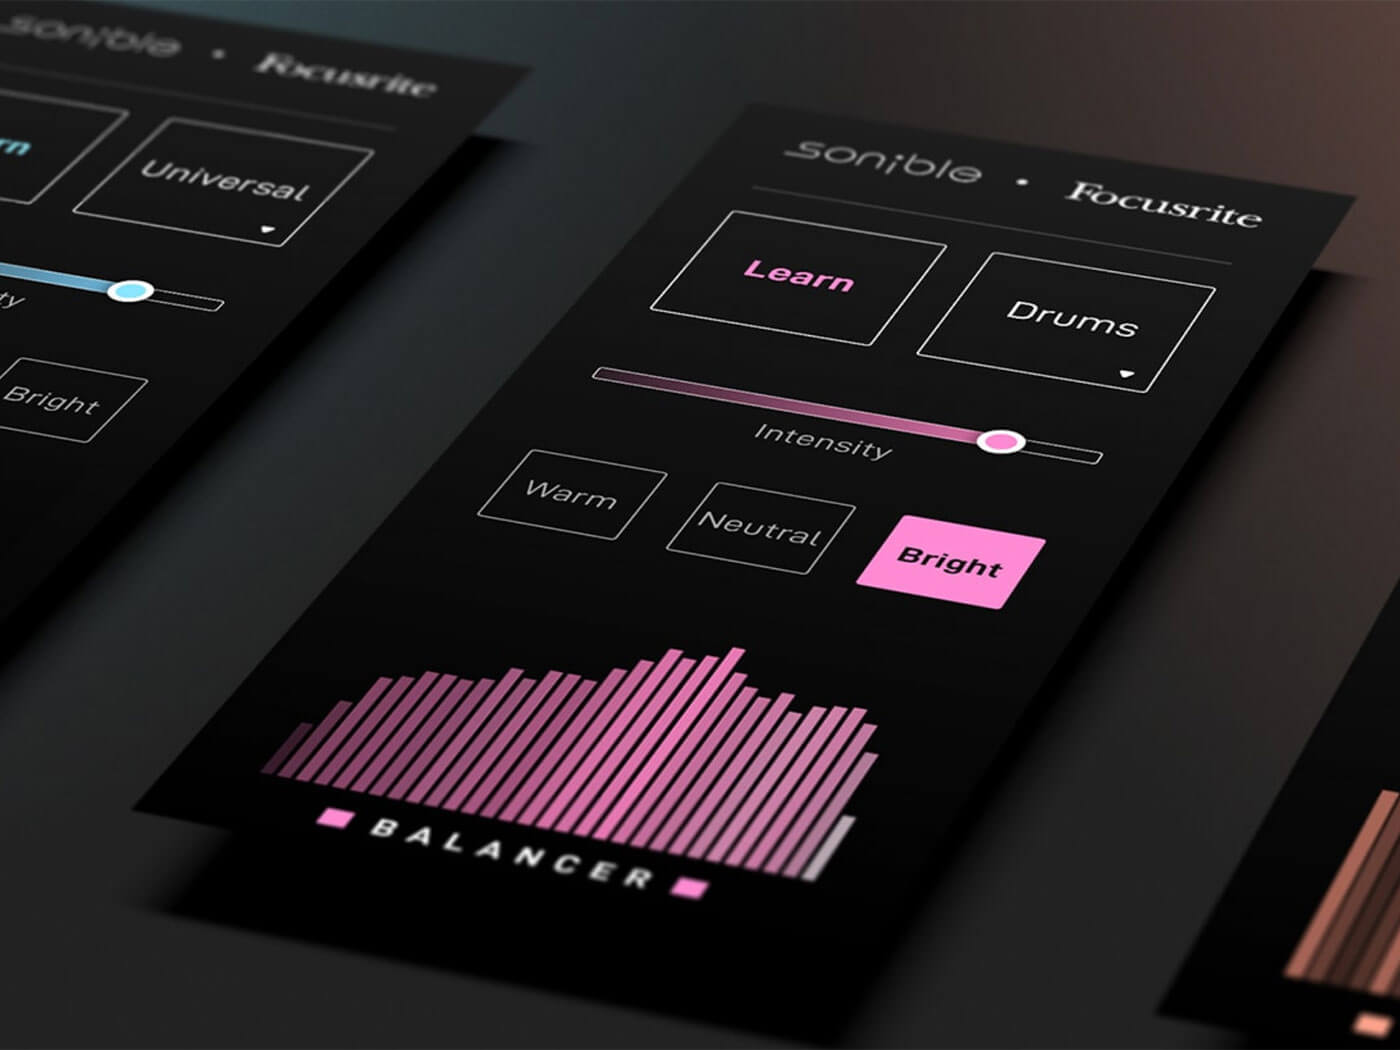 sonible gives out free 'stay@home' plug-in and hosts daily contest - MusicTech